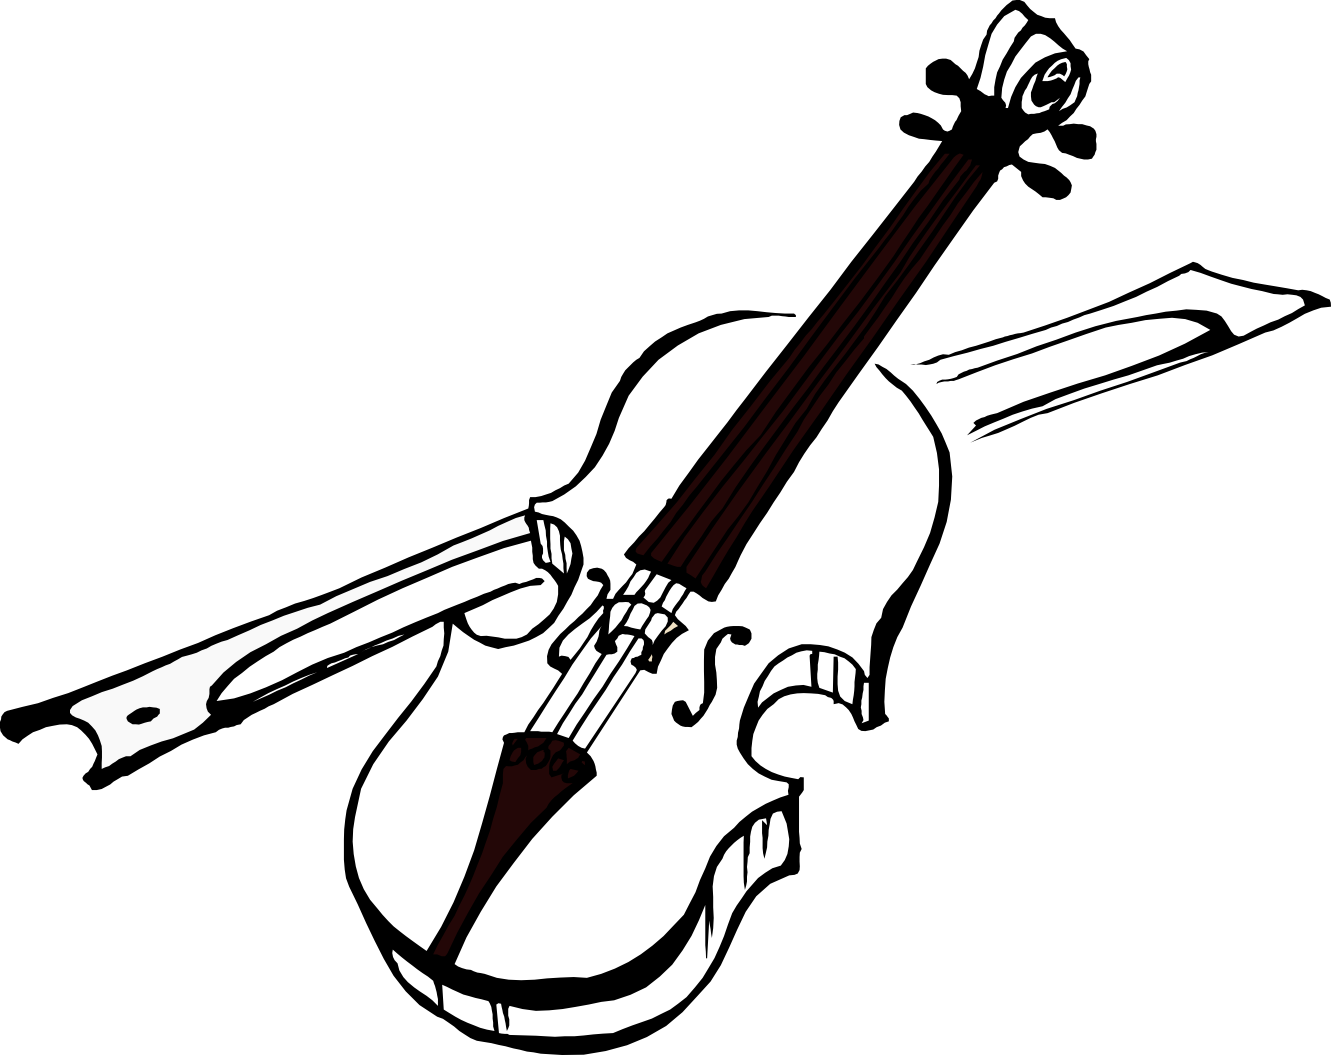 Cello Clipart Black And White | Clipart Panda - Free Clipart Images